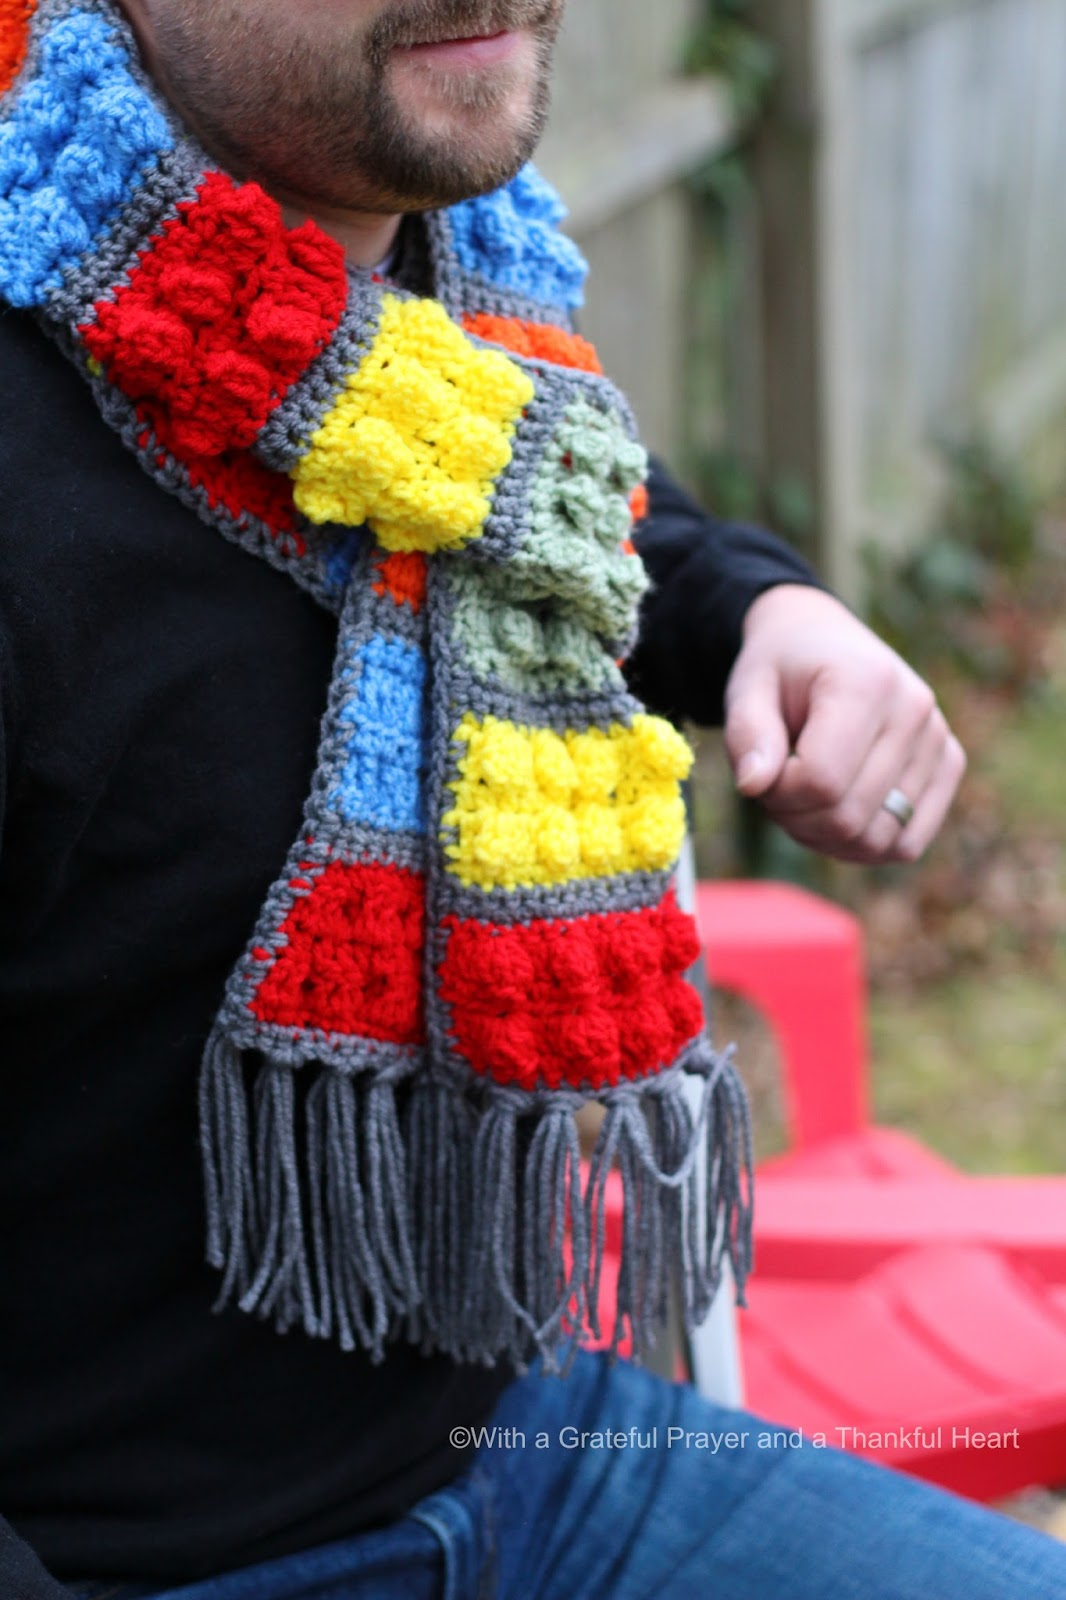 Crochet lego blocks scarf grateful prayer thankful heart crochet lego blocks scarf bankloansurffo Image collections